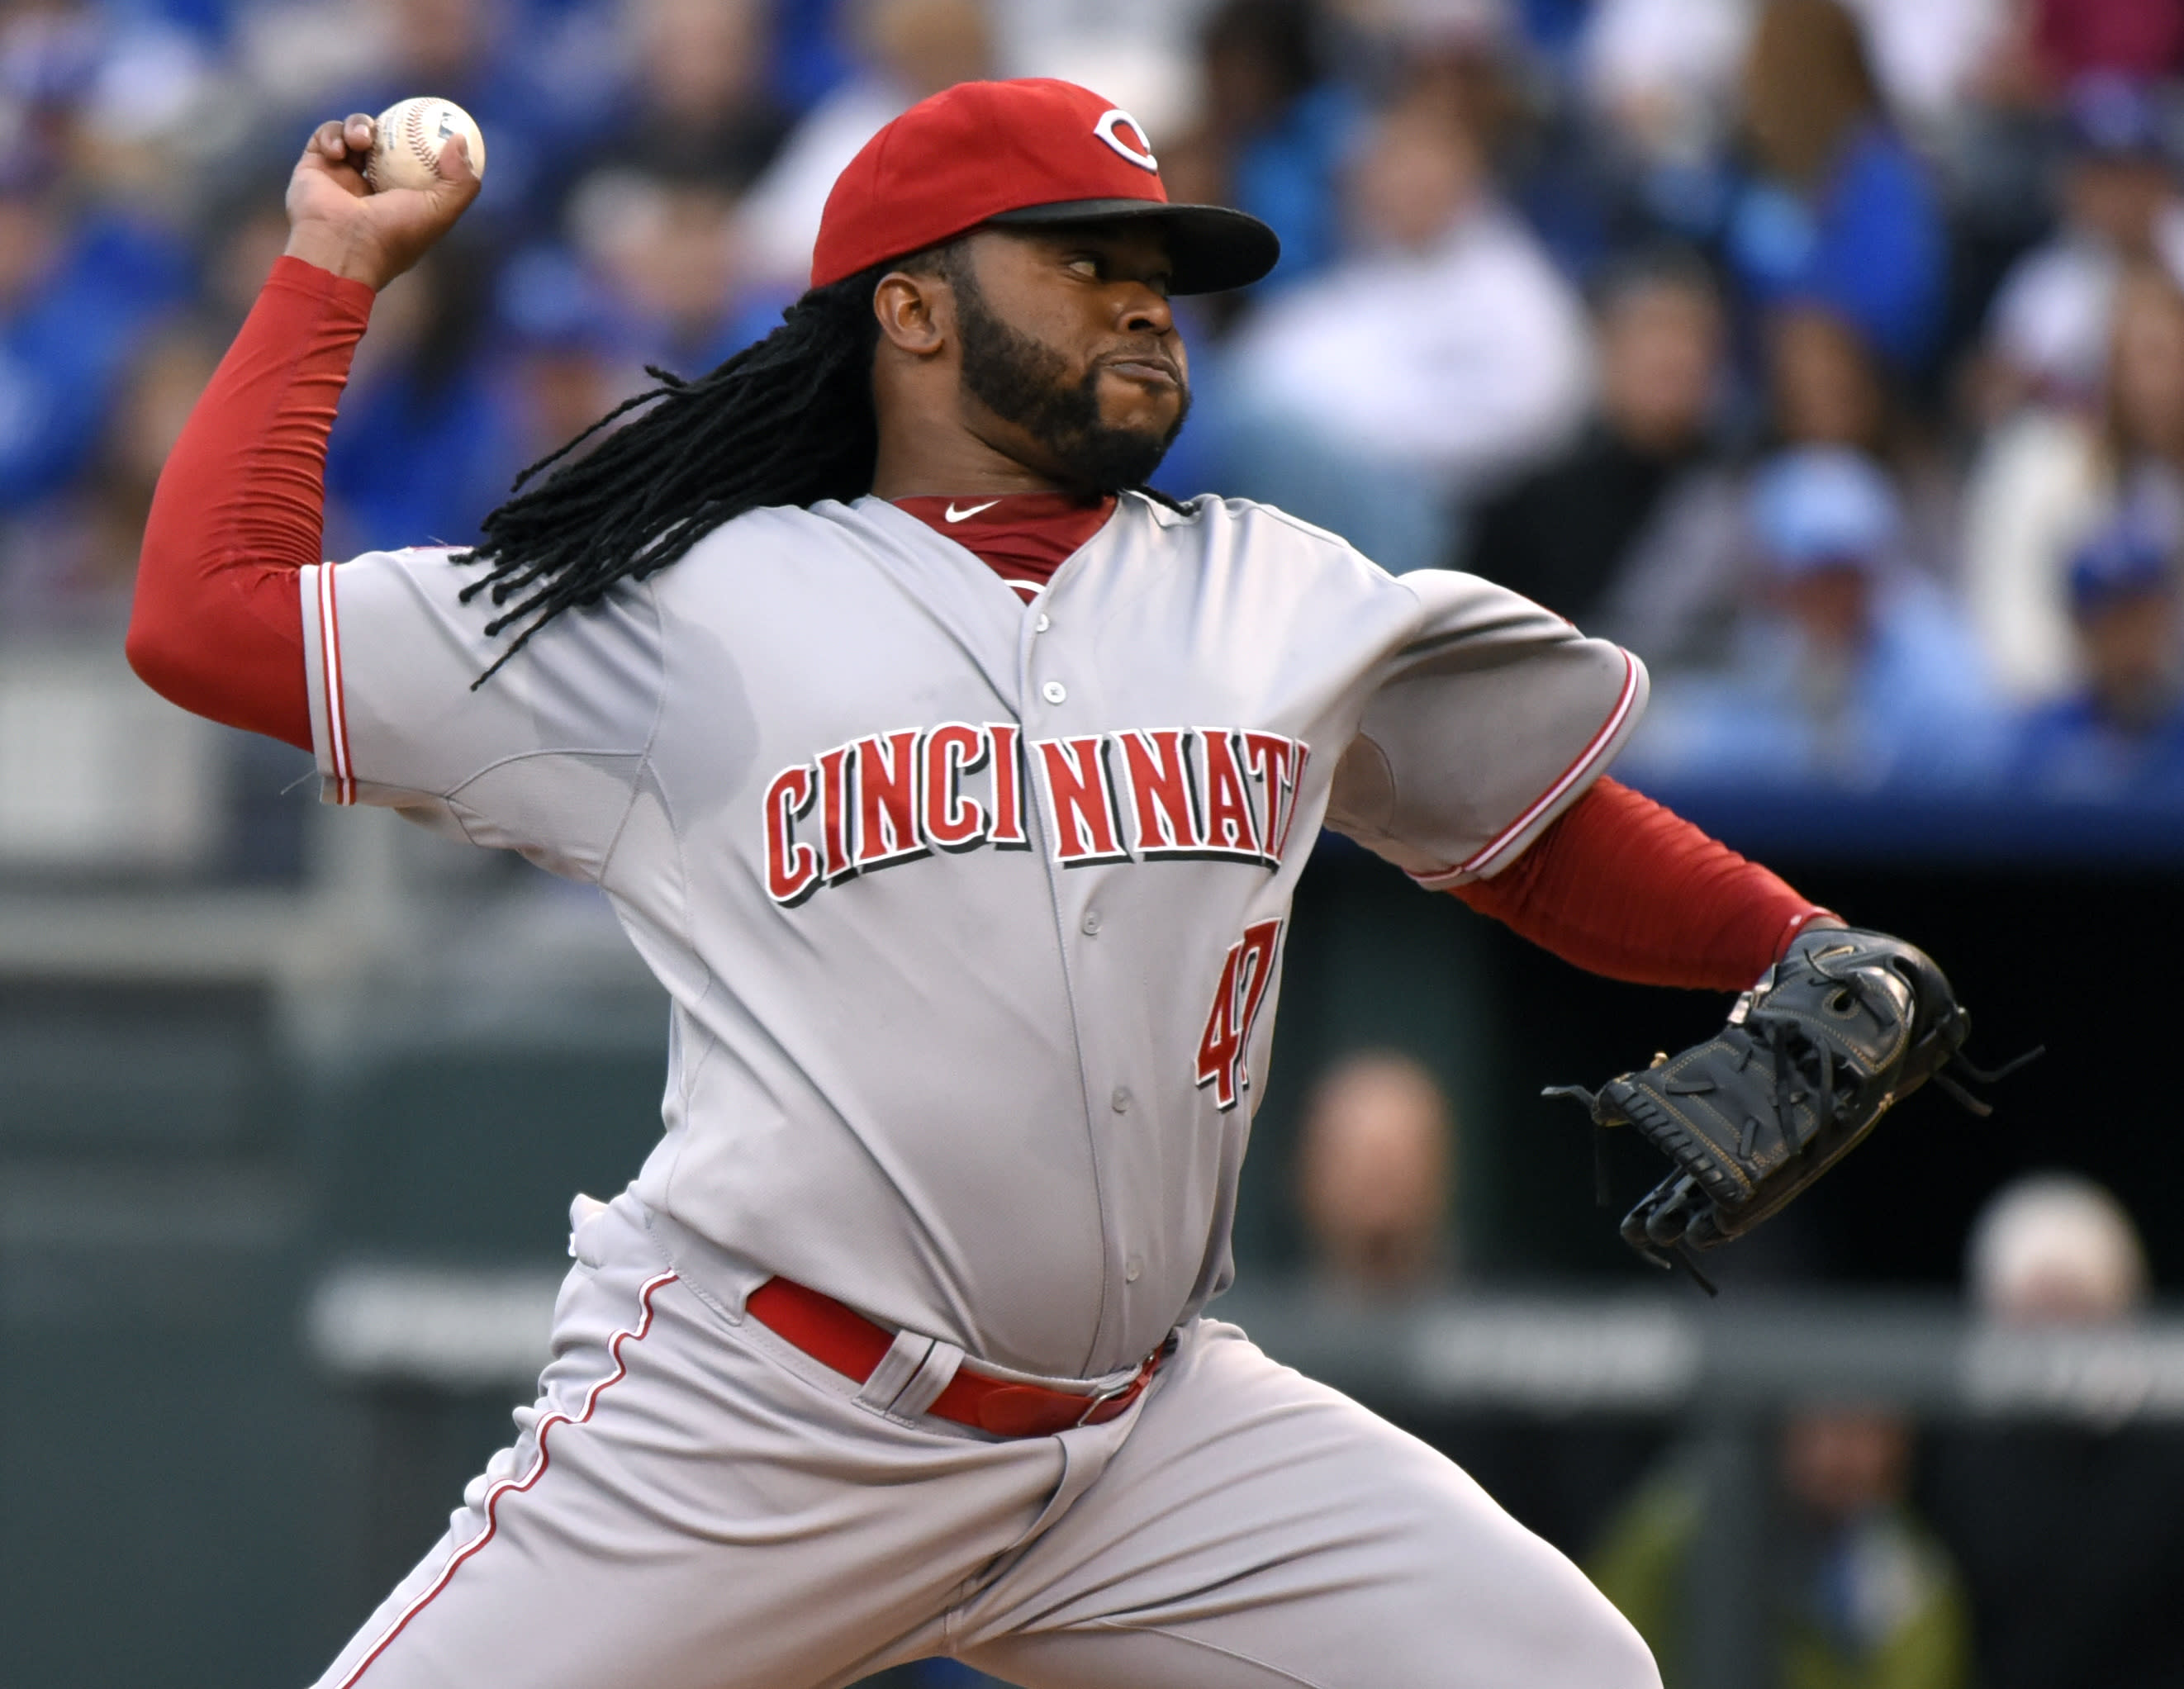 MRI finds inflammation in Cueto's elbow but no major problem